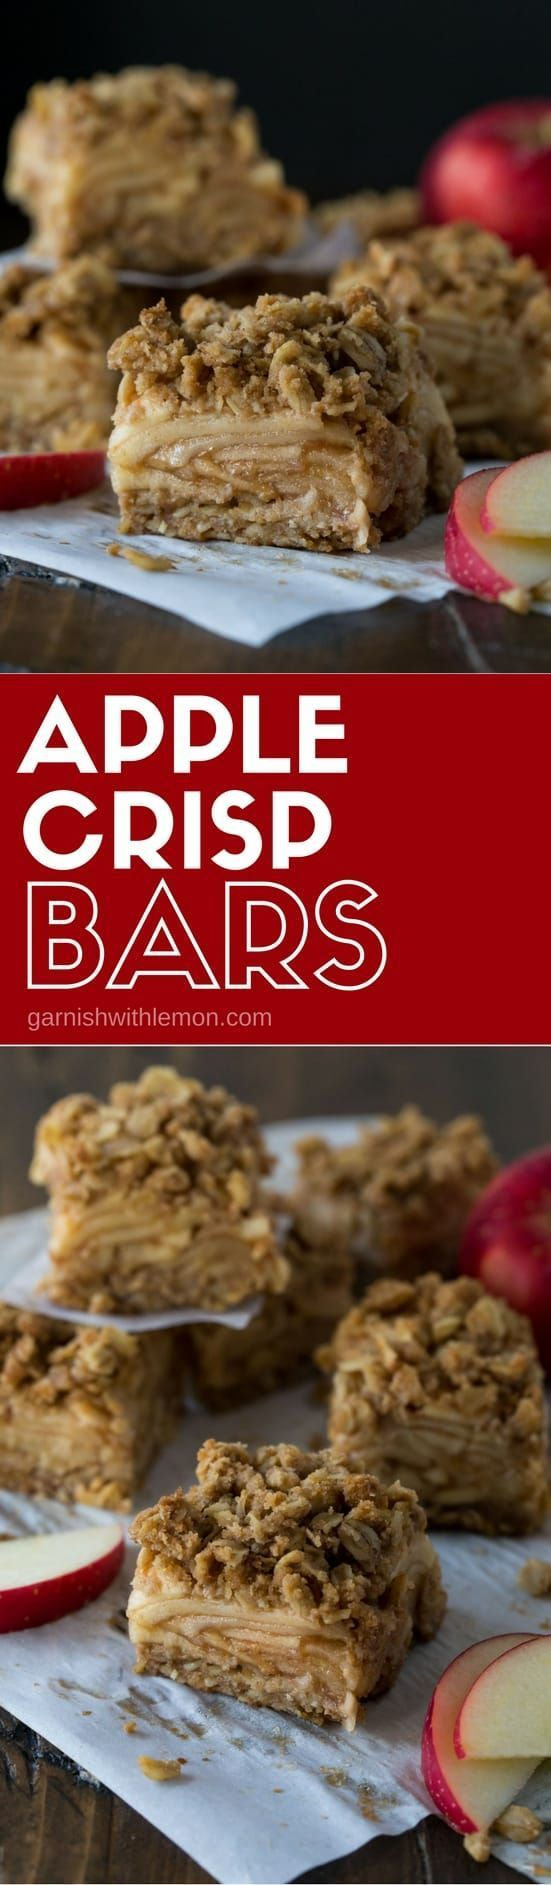 These Apple Crisp bars have all of the flavor of our favorite fall dessert in portable form!